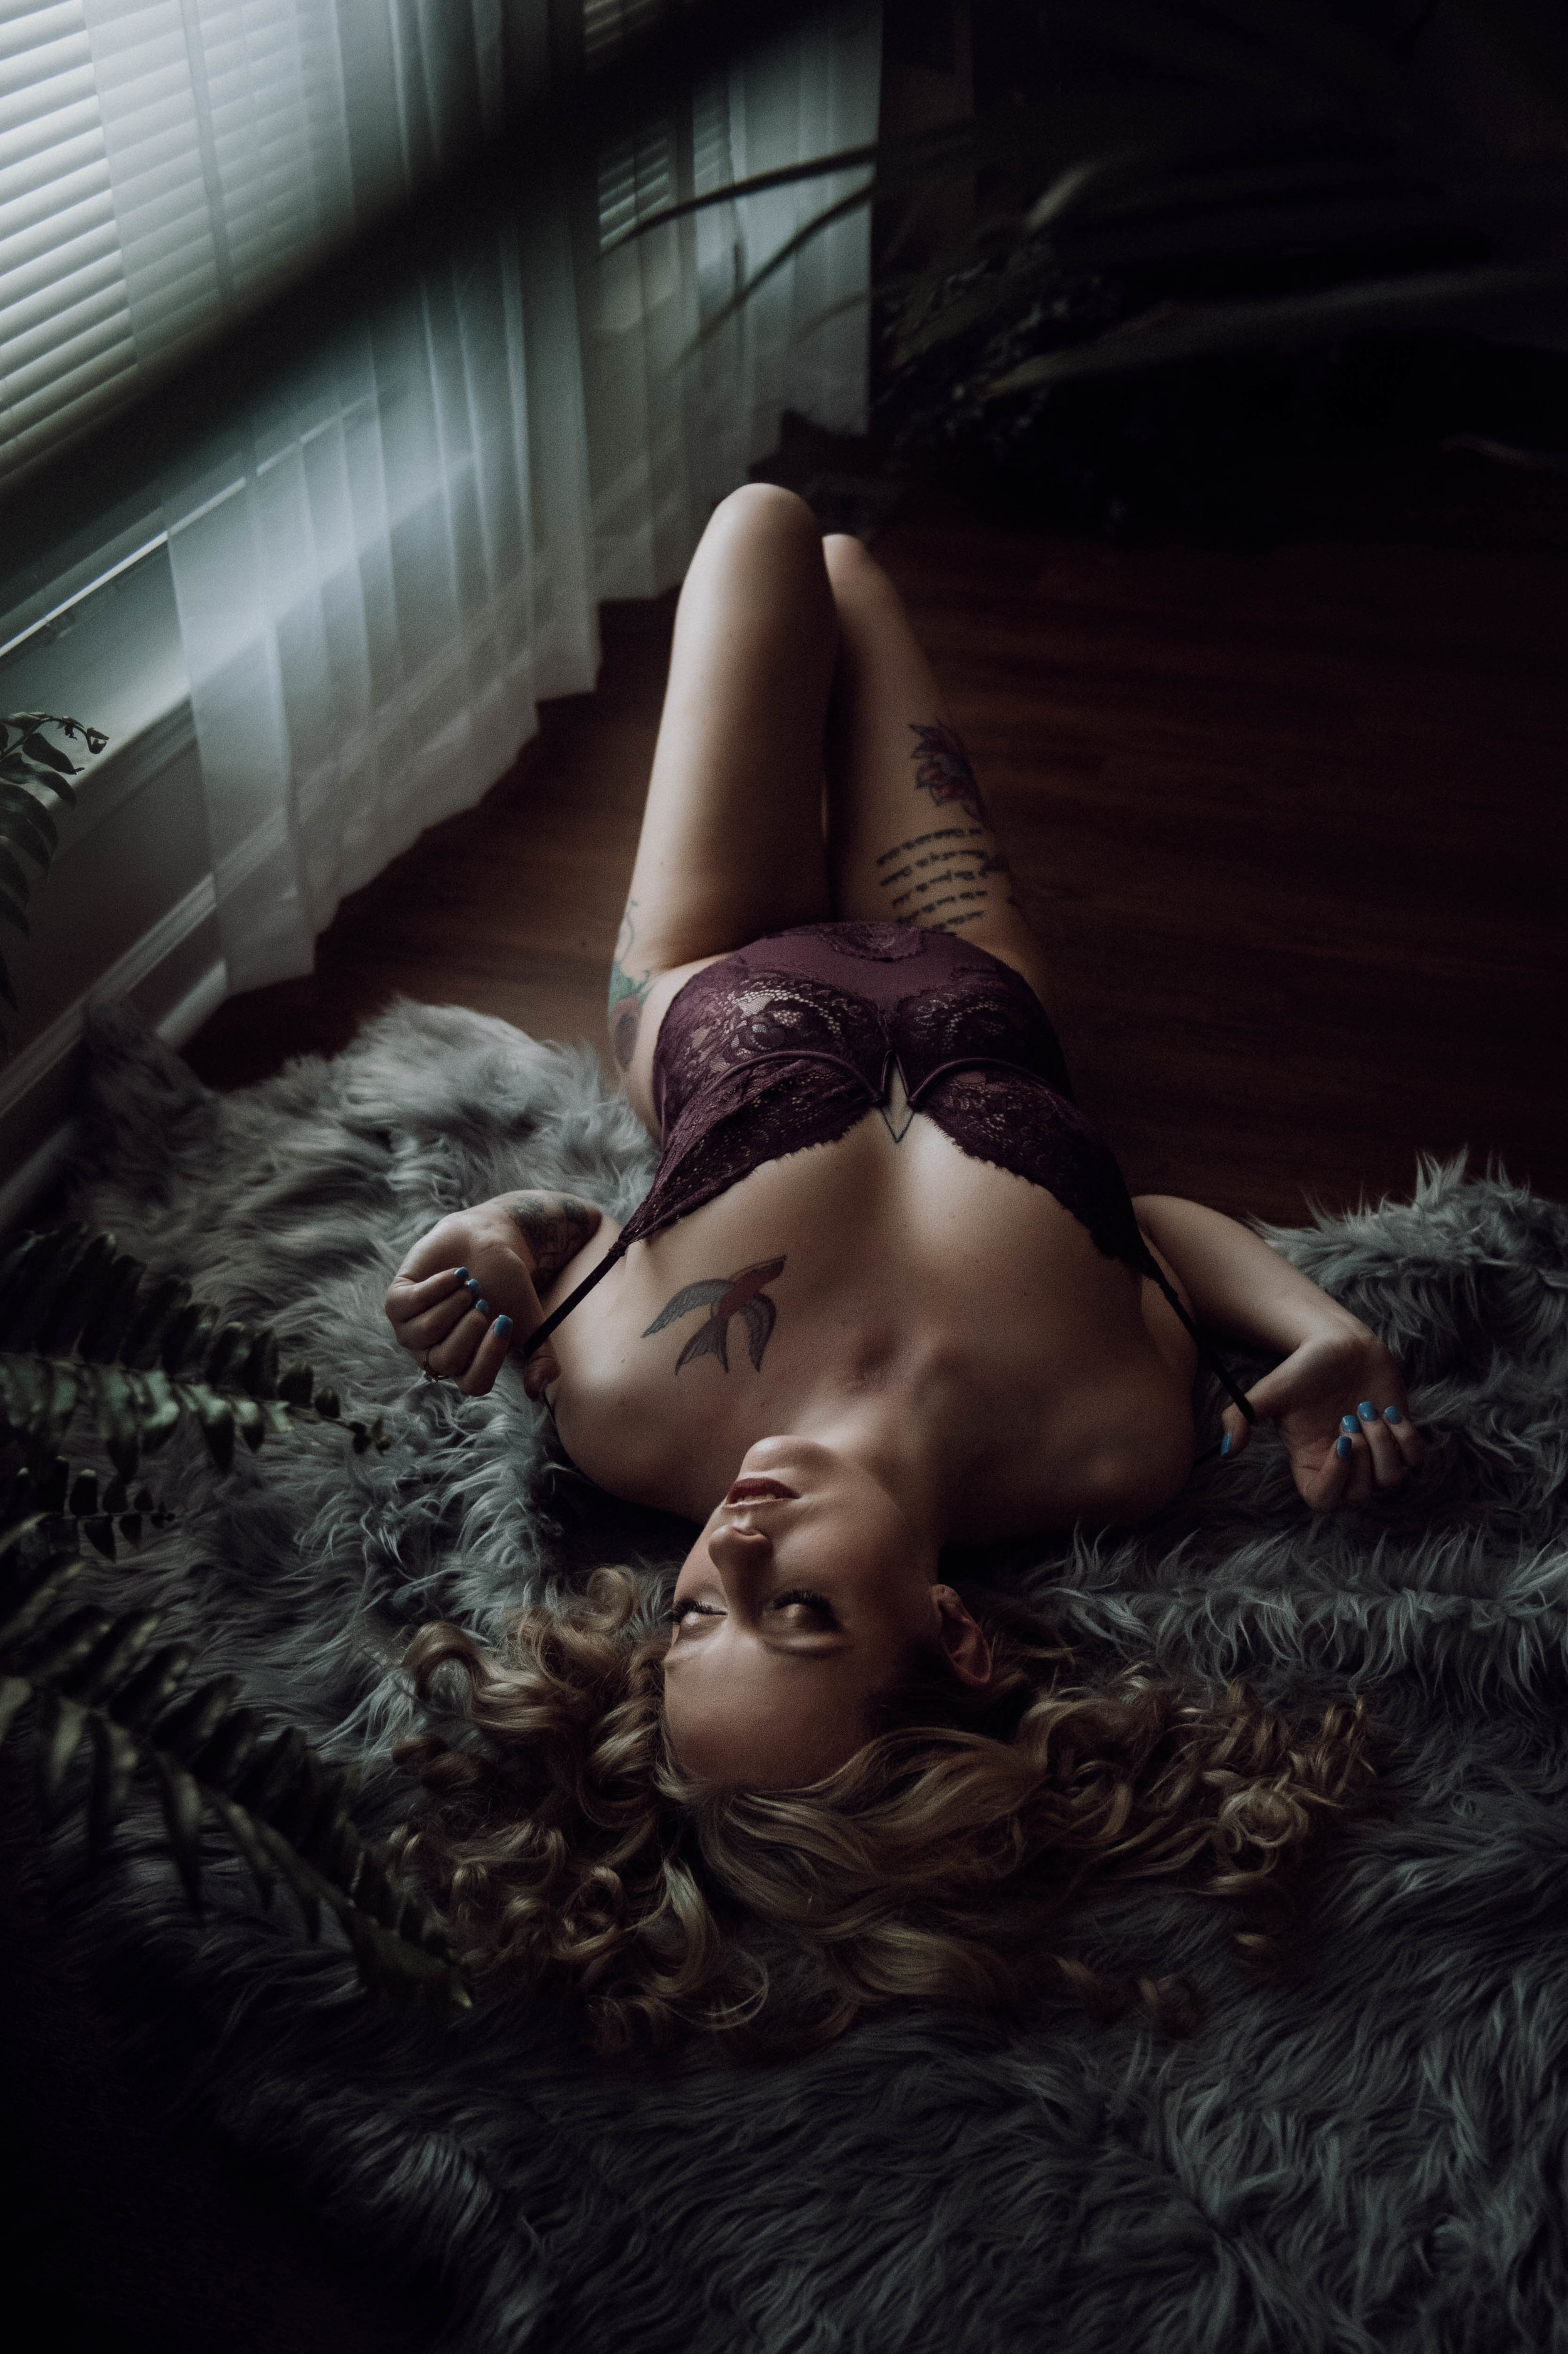 Blonde laying on gray rug in purple lace bodysuit boudoir photography new york city studio